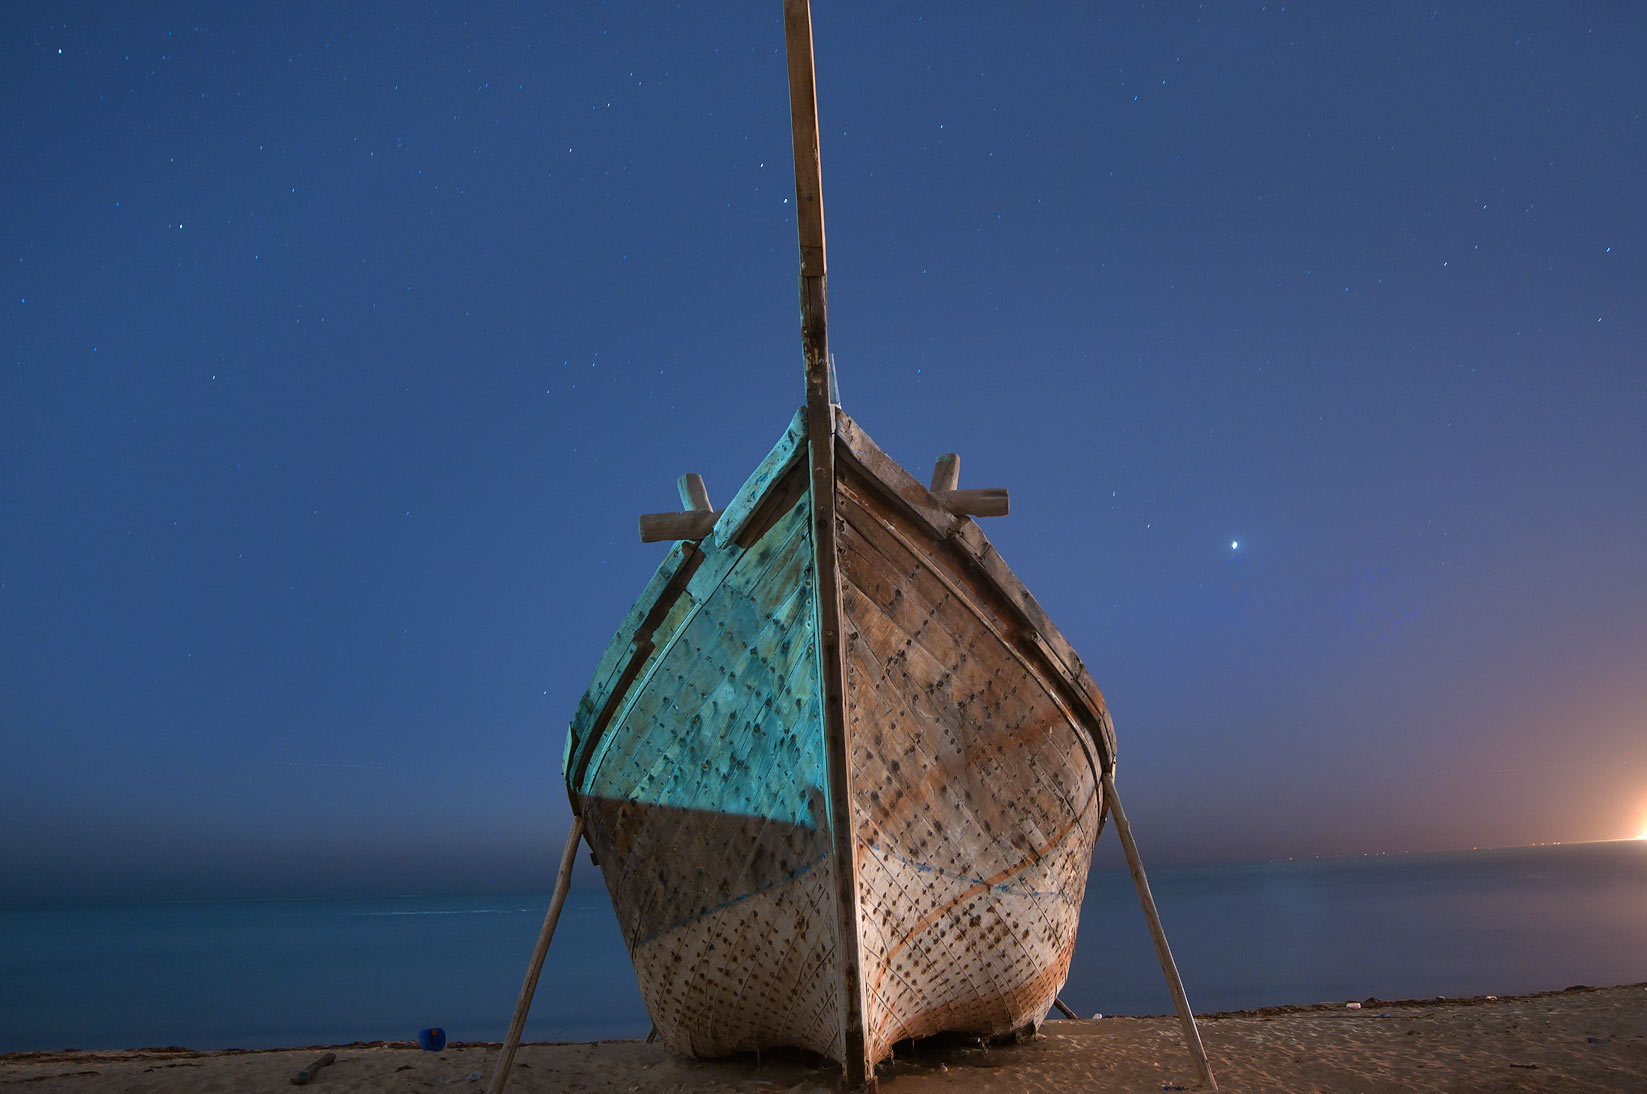 Fishing boat on a beach at morning dusk. Al Wakrah, Qatar